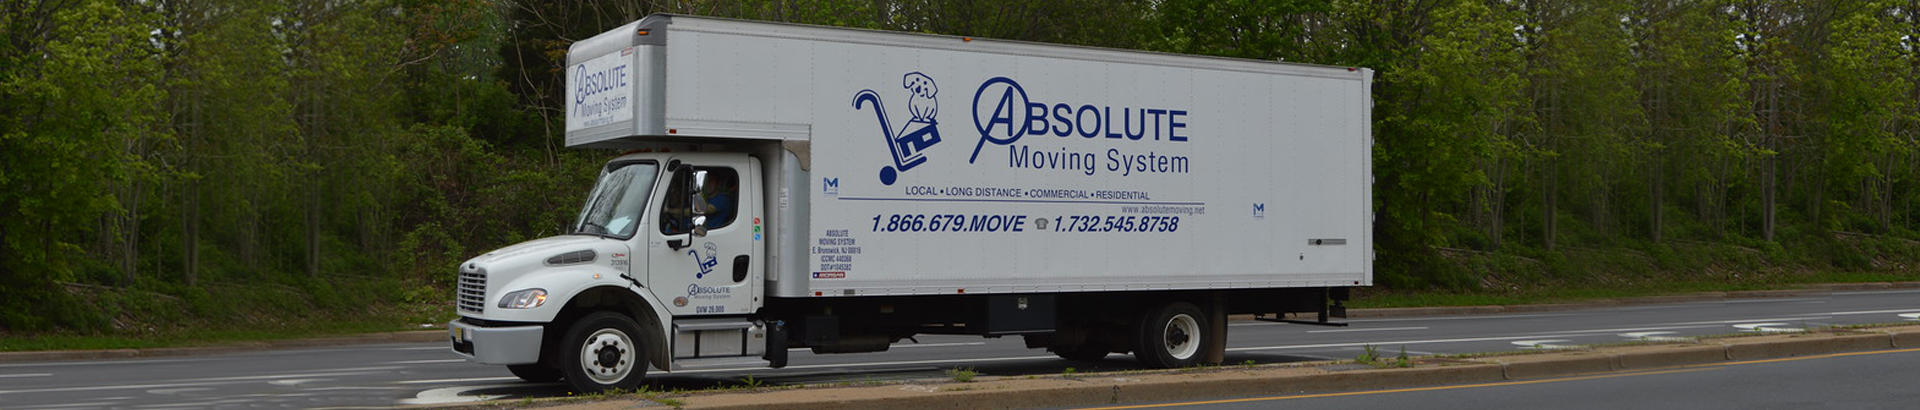 Absolute Moving System image 3